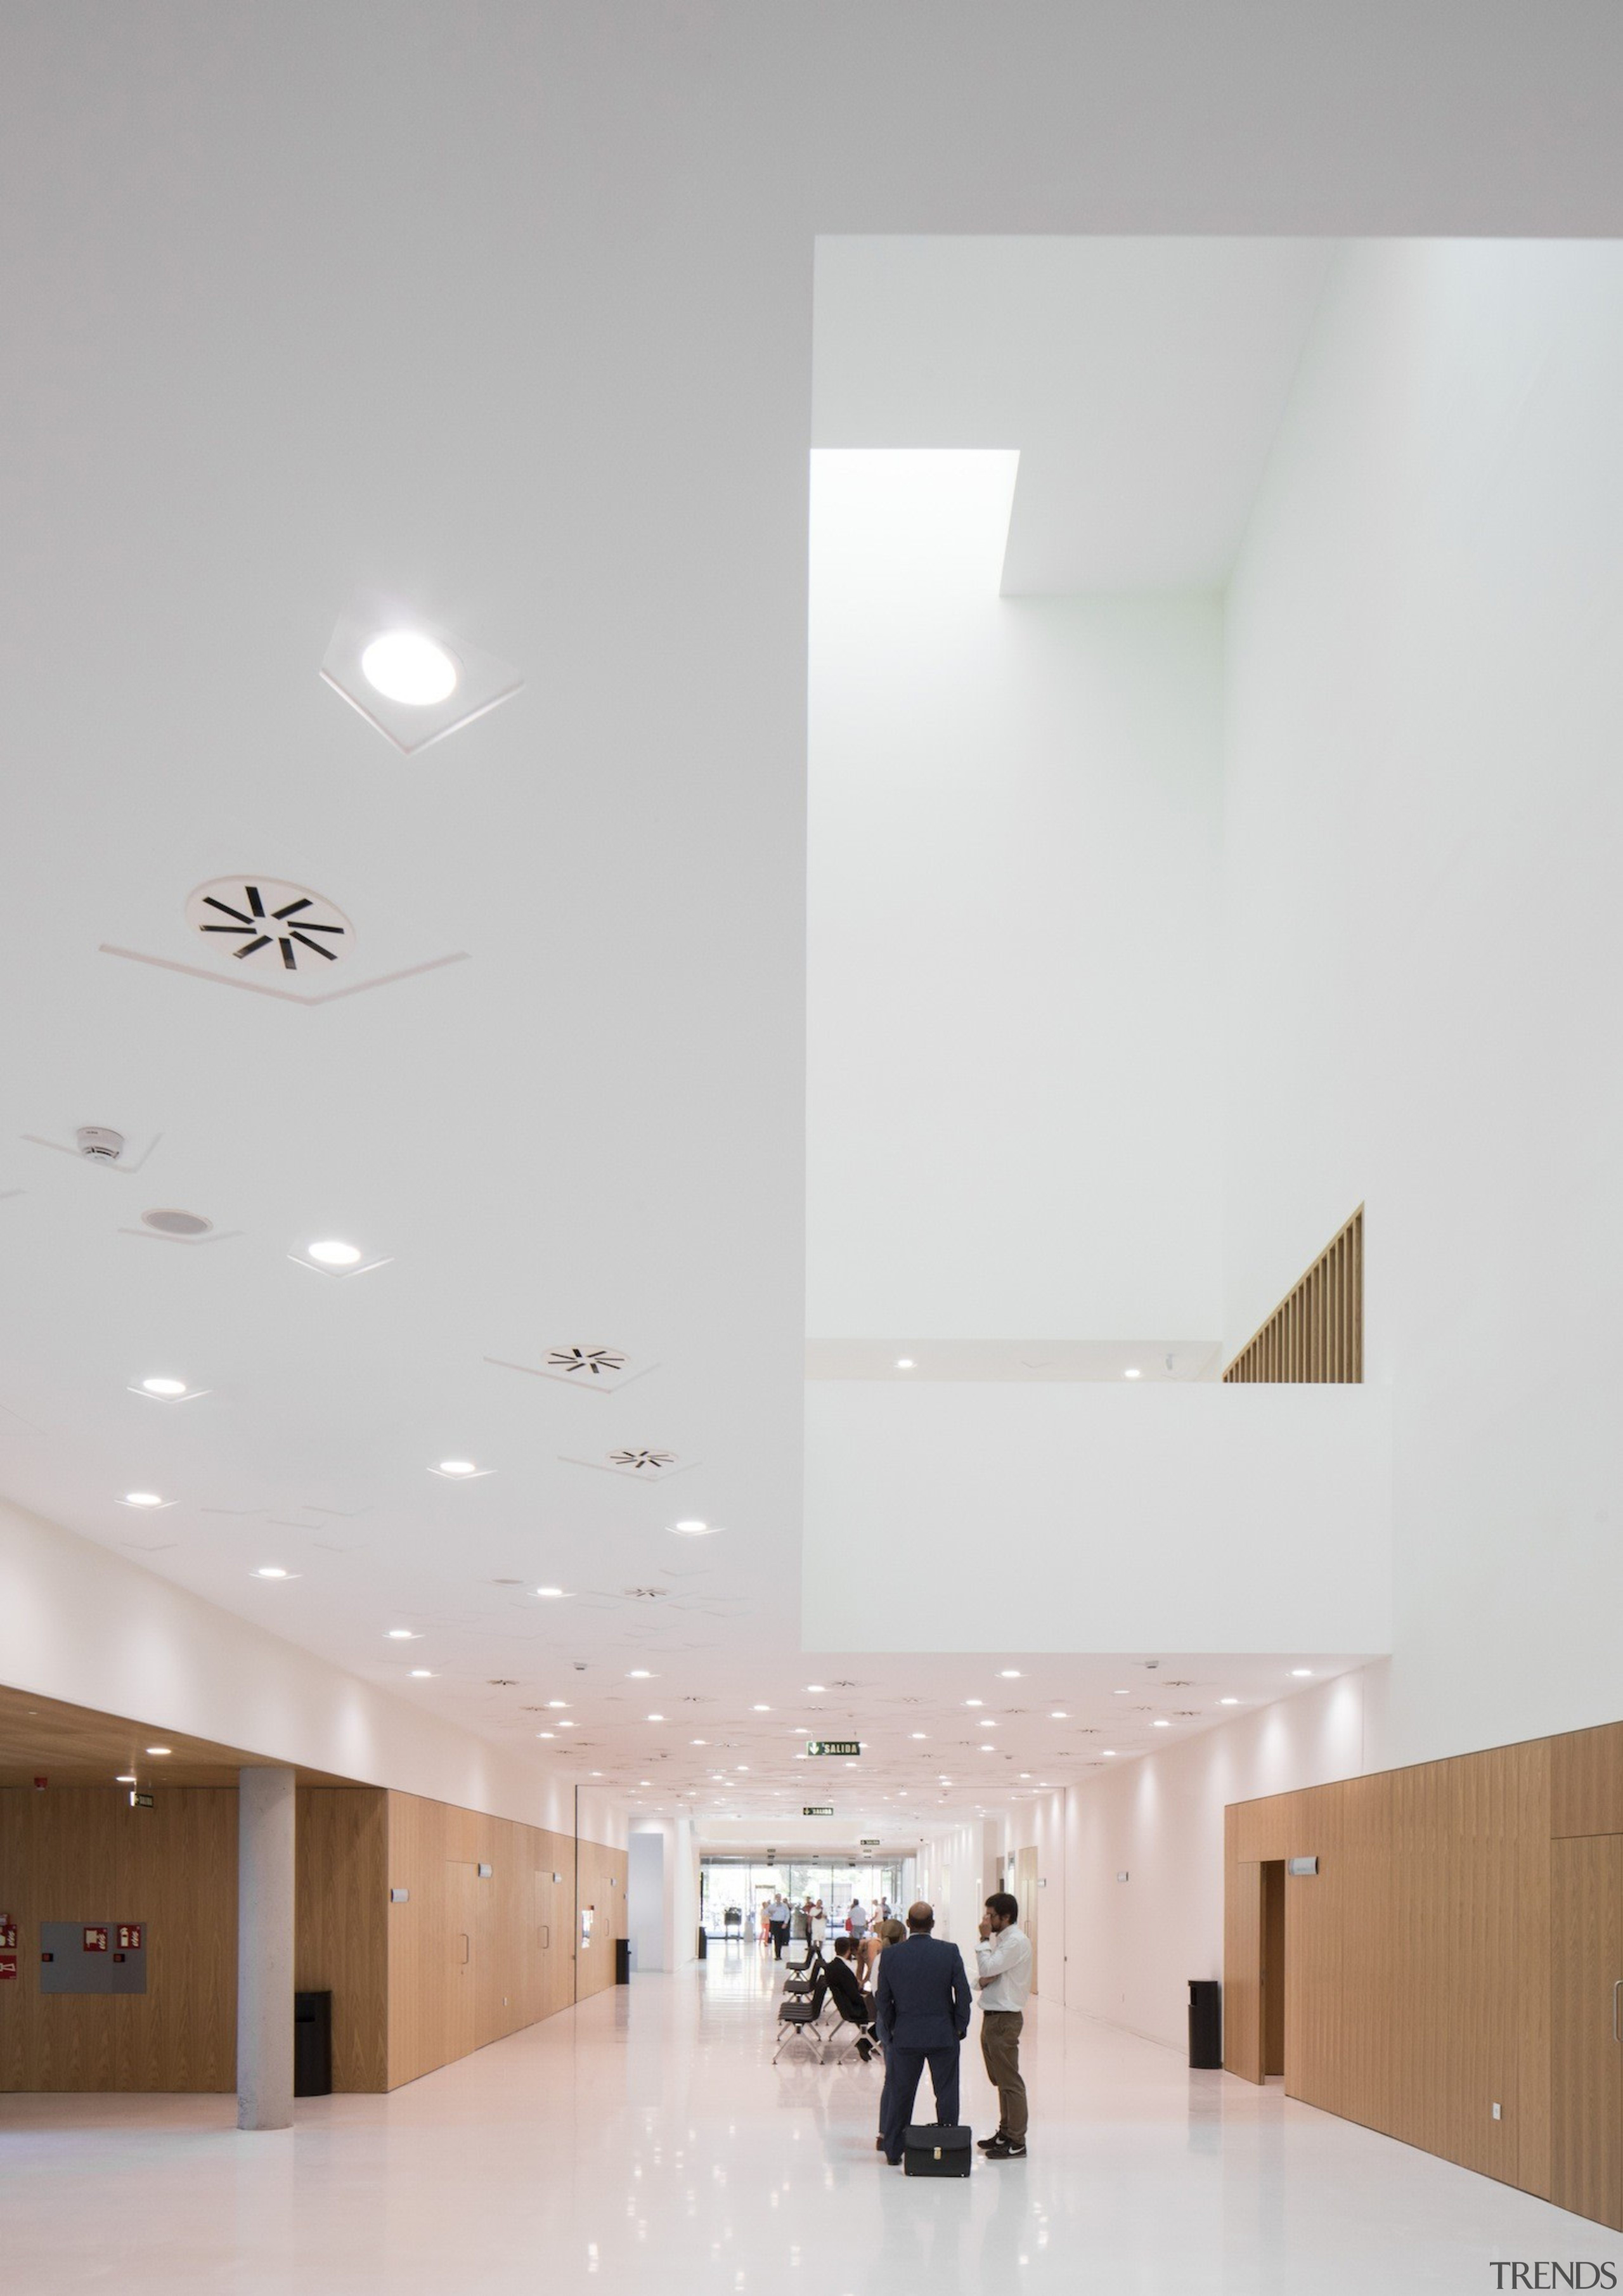 Palace of Justice building | Mecanoo + Ayesa architecture, ceiling, daylighting, floor, house, interior design, product design, gray